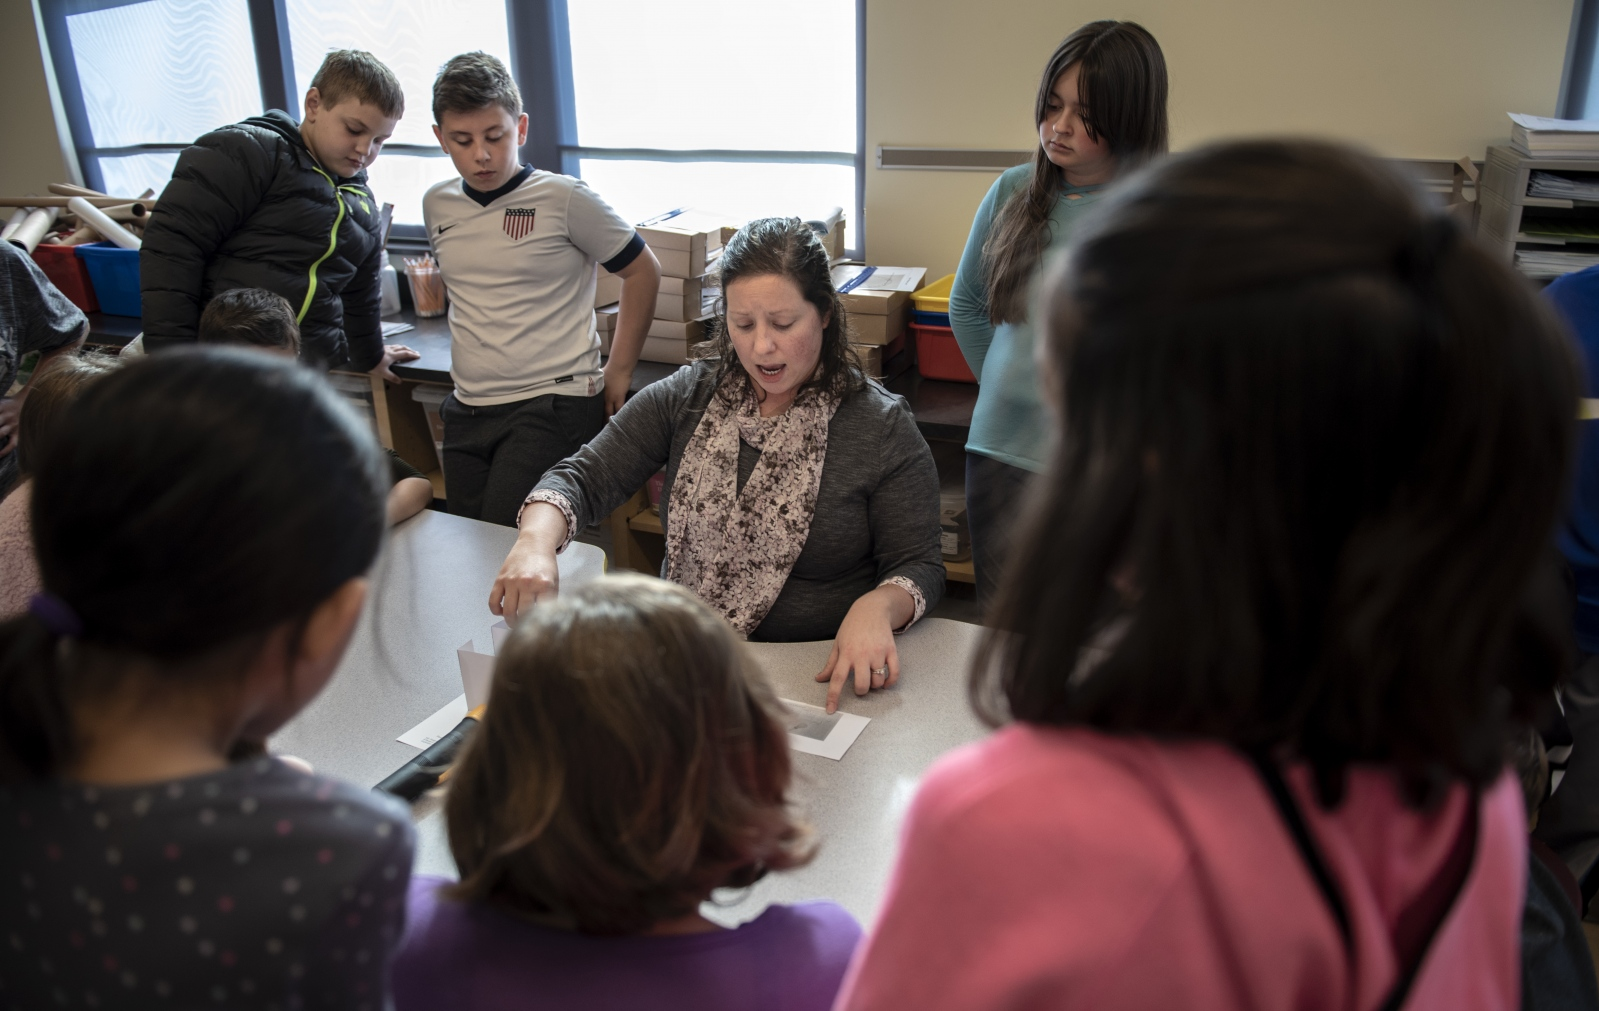 Tara Pollick teaches students how to do the light experiment in the STEM class on Oct. 17, 2018, at Ferguson Township Elementary School in State College, Pa.